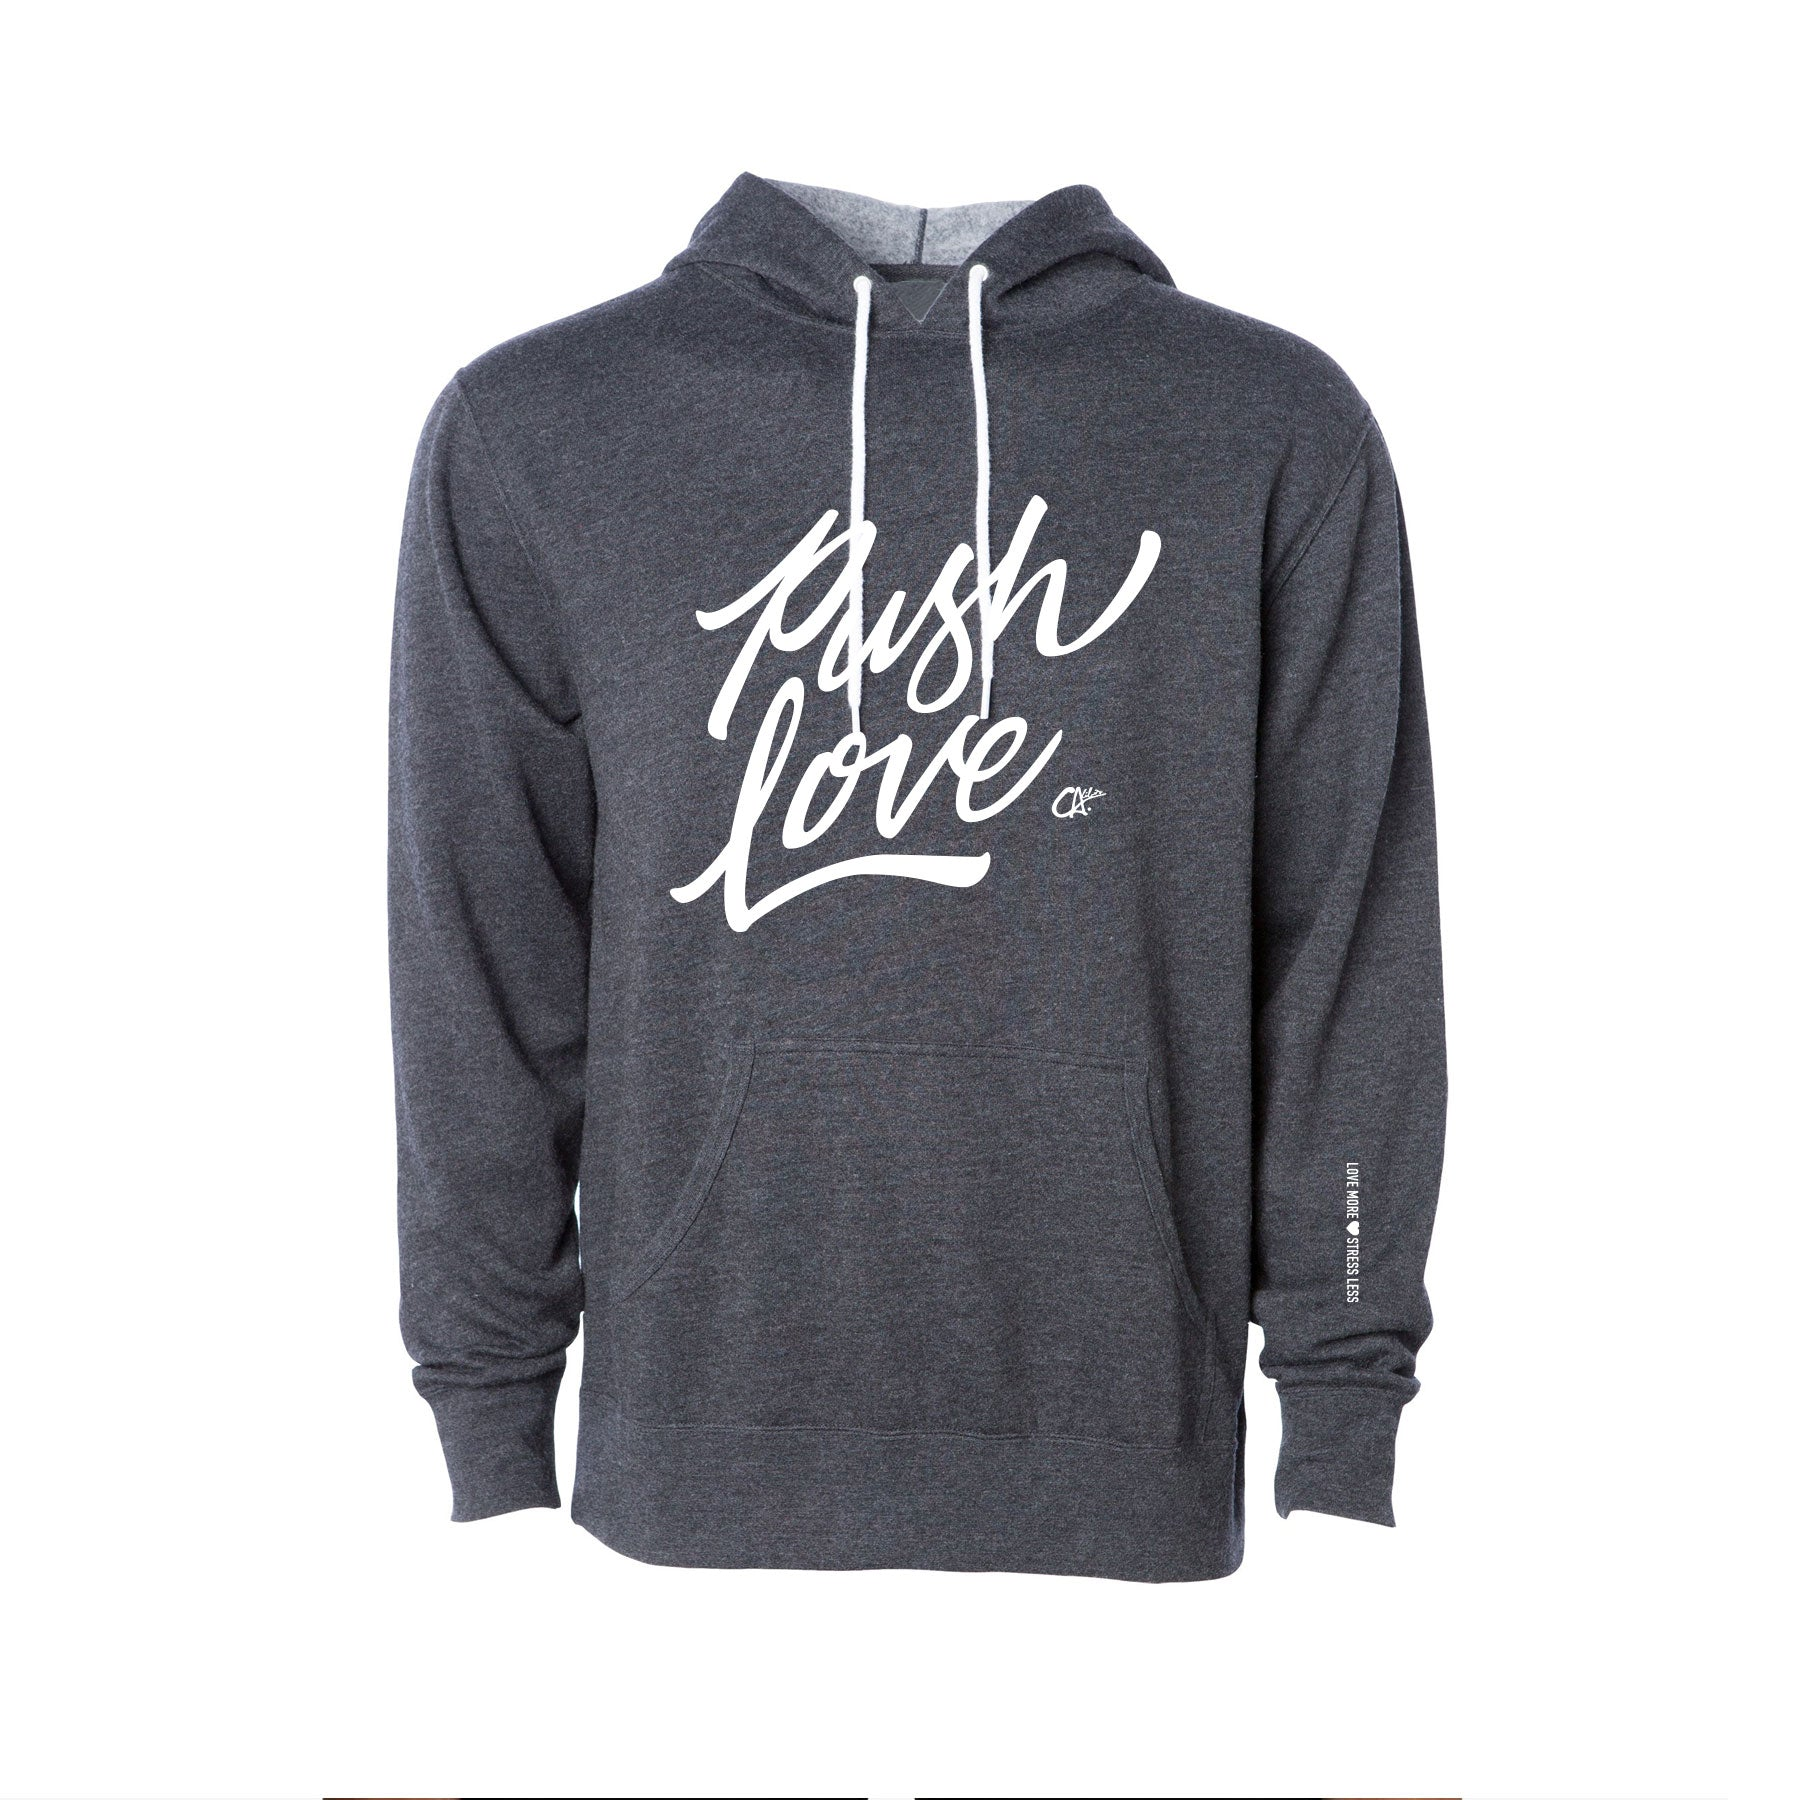 Push Love Hoodie by Calibis Clothing